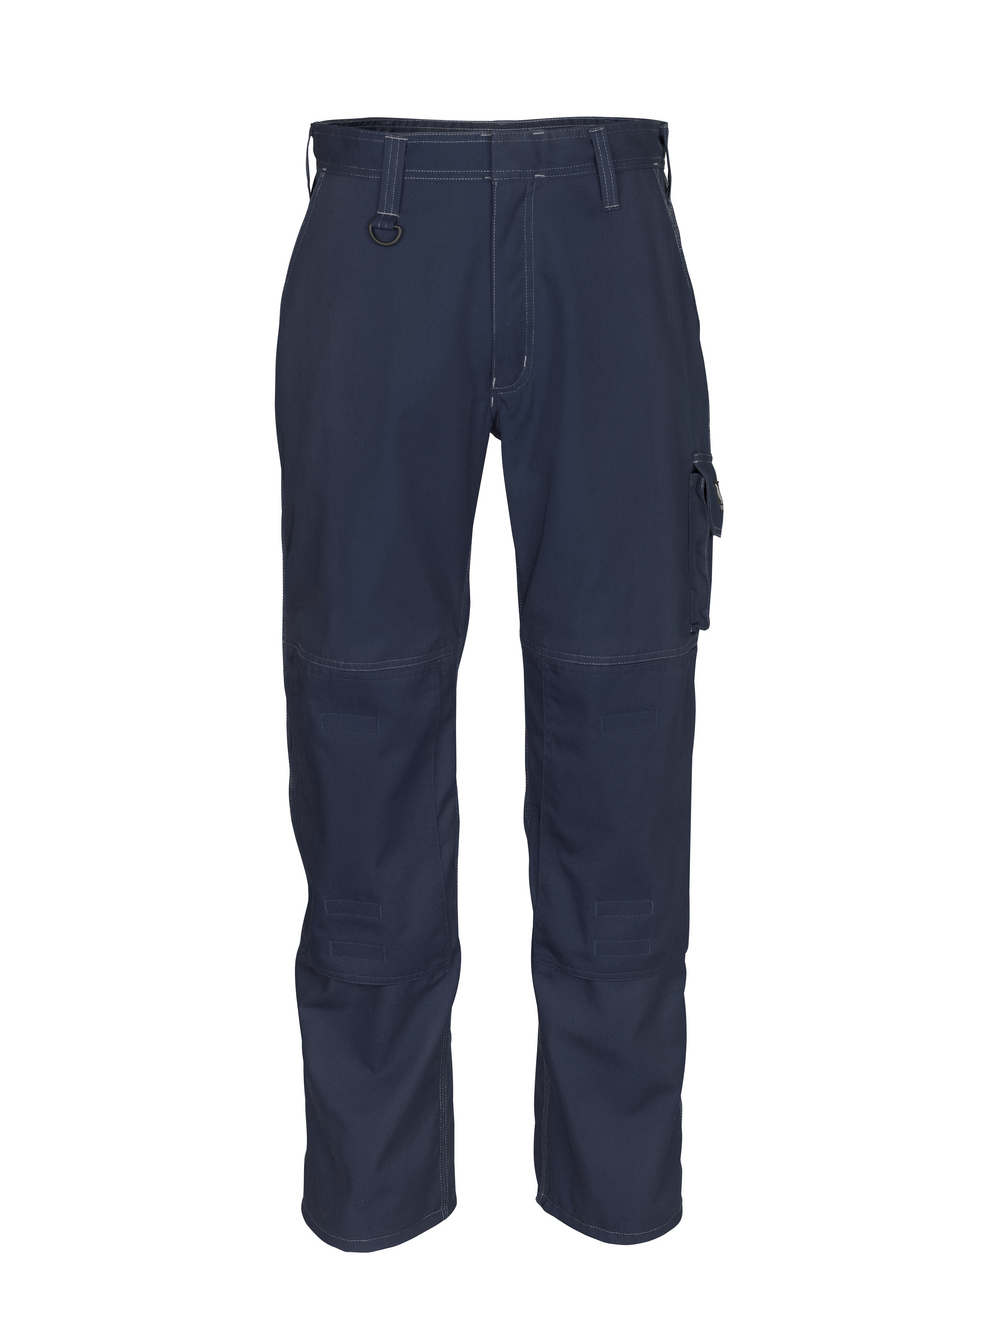 10579-442-010 Pants with kneepad pockets - dark navy